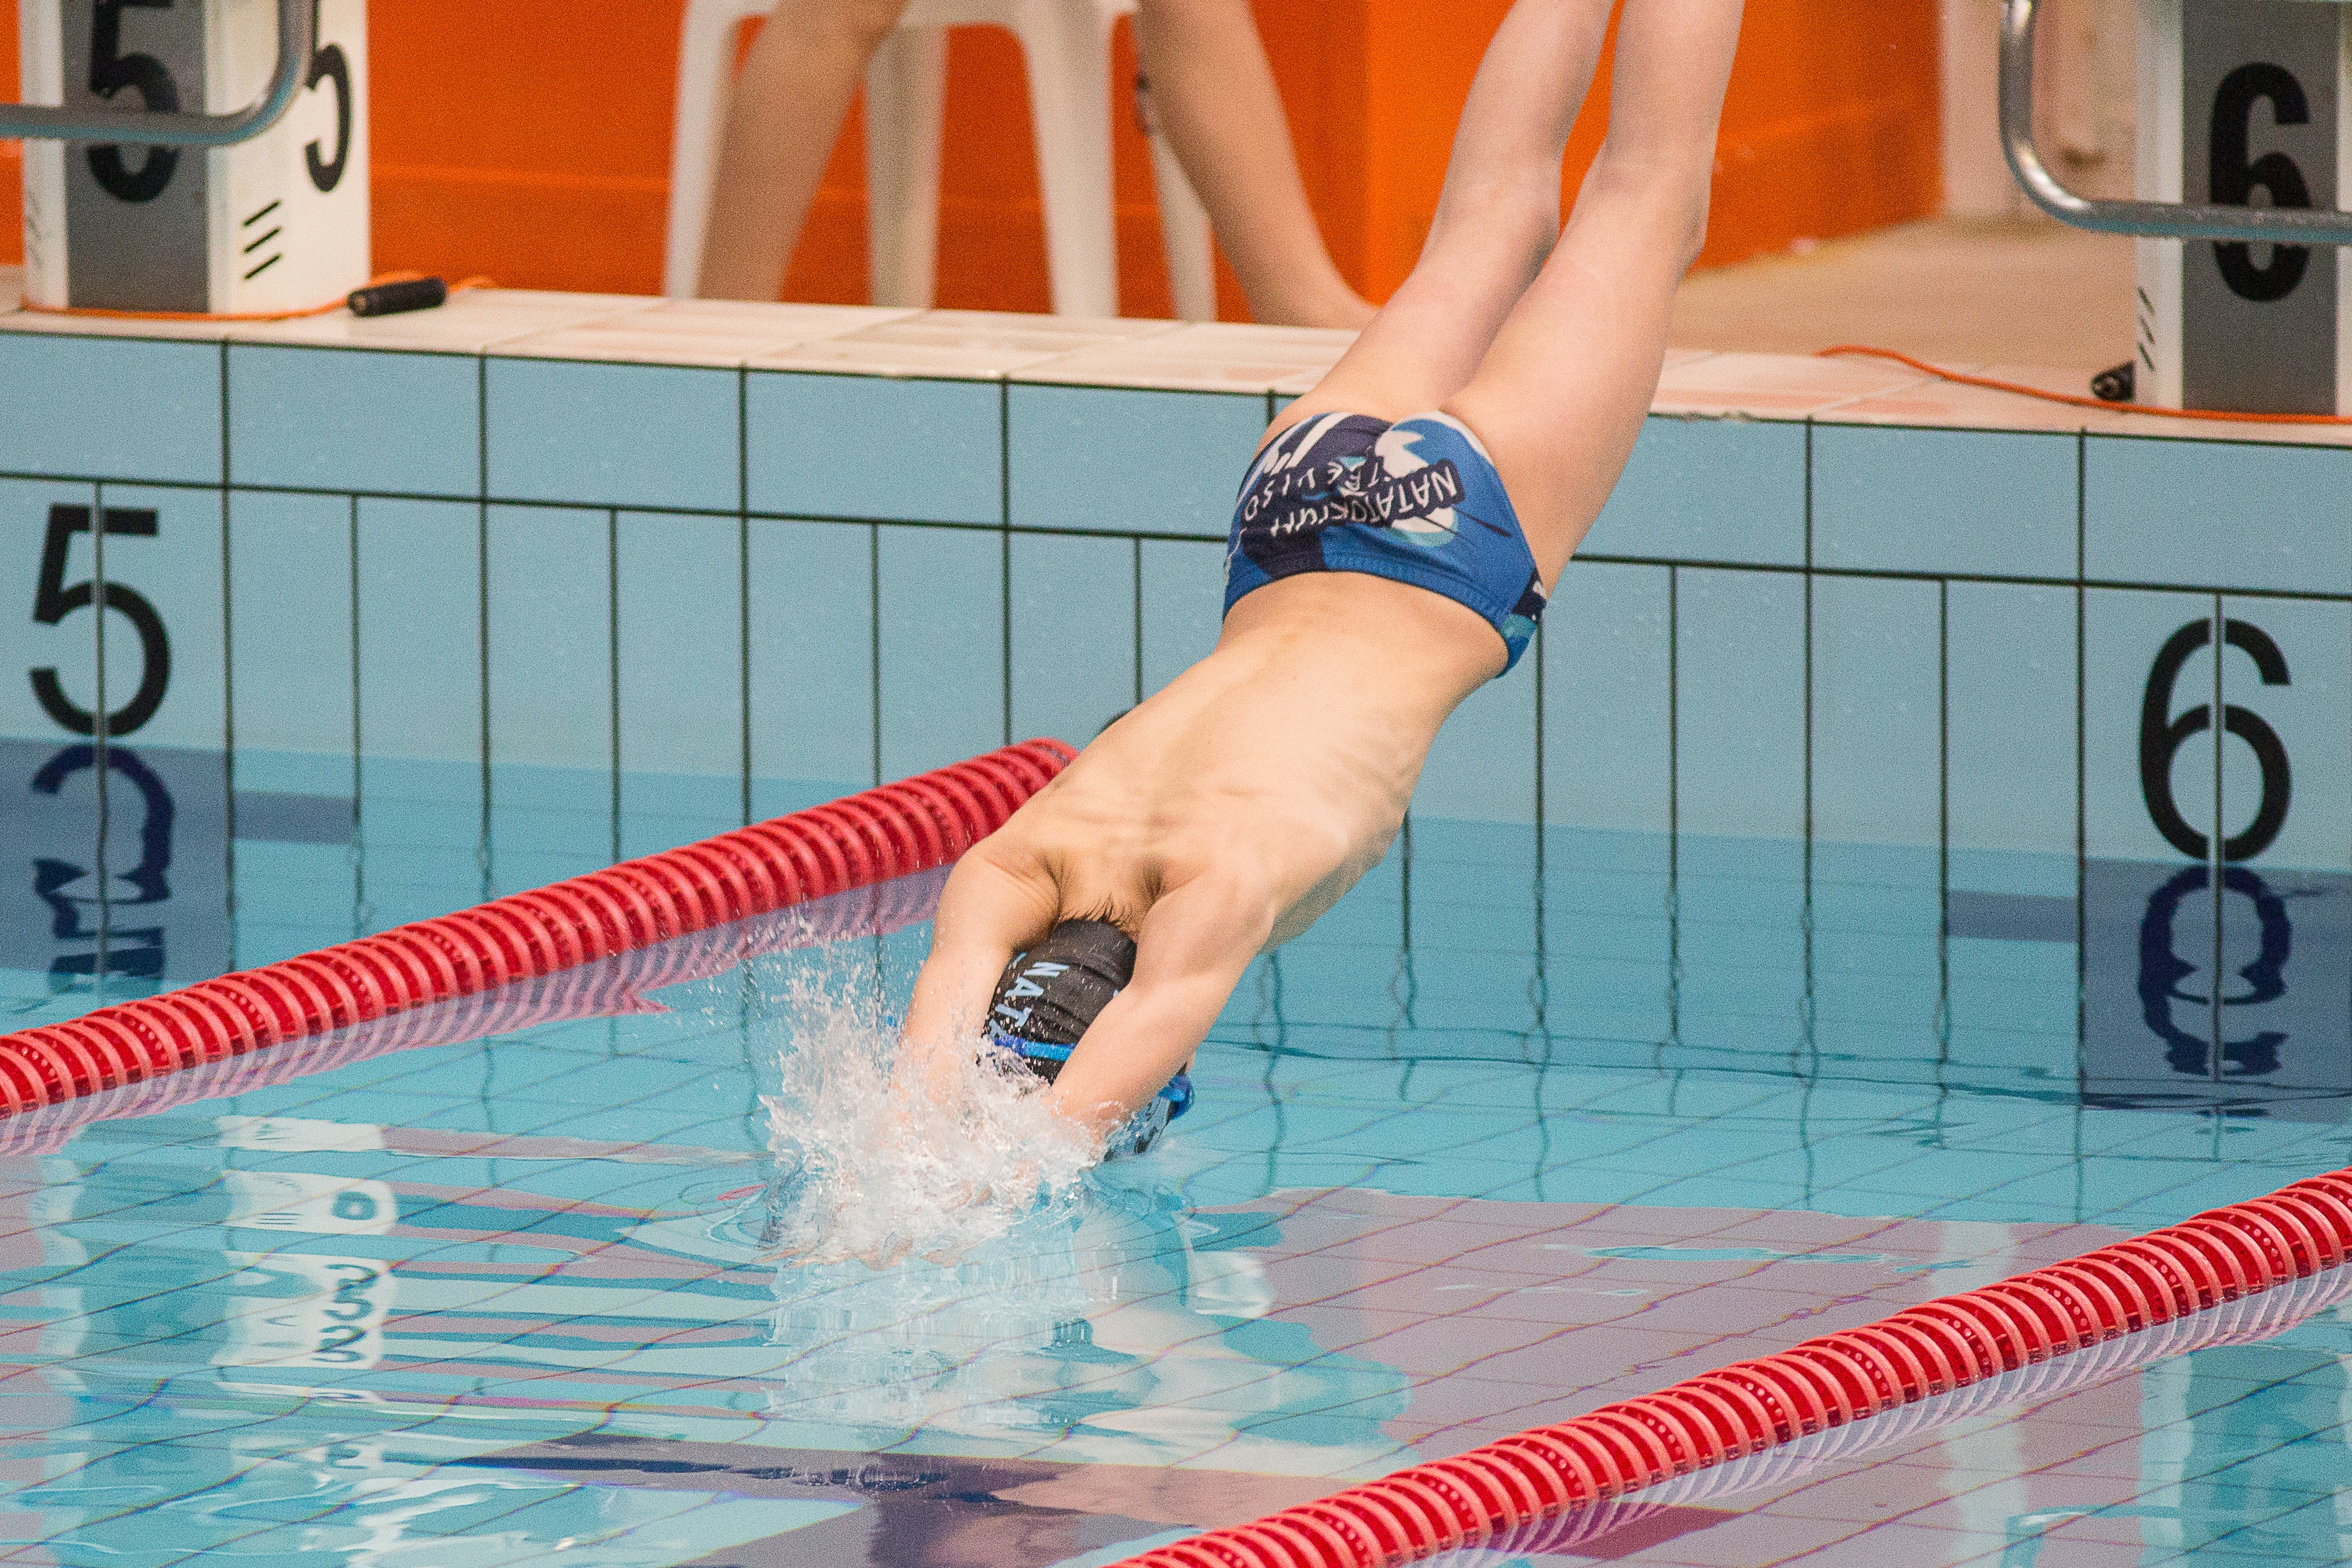 Swimming can impact your heart health differently than other aerobic exercises.